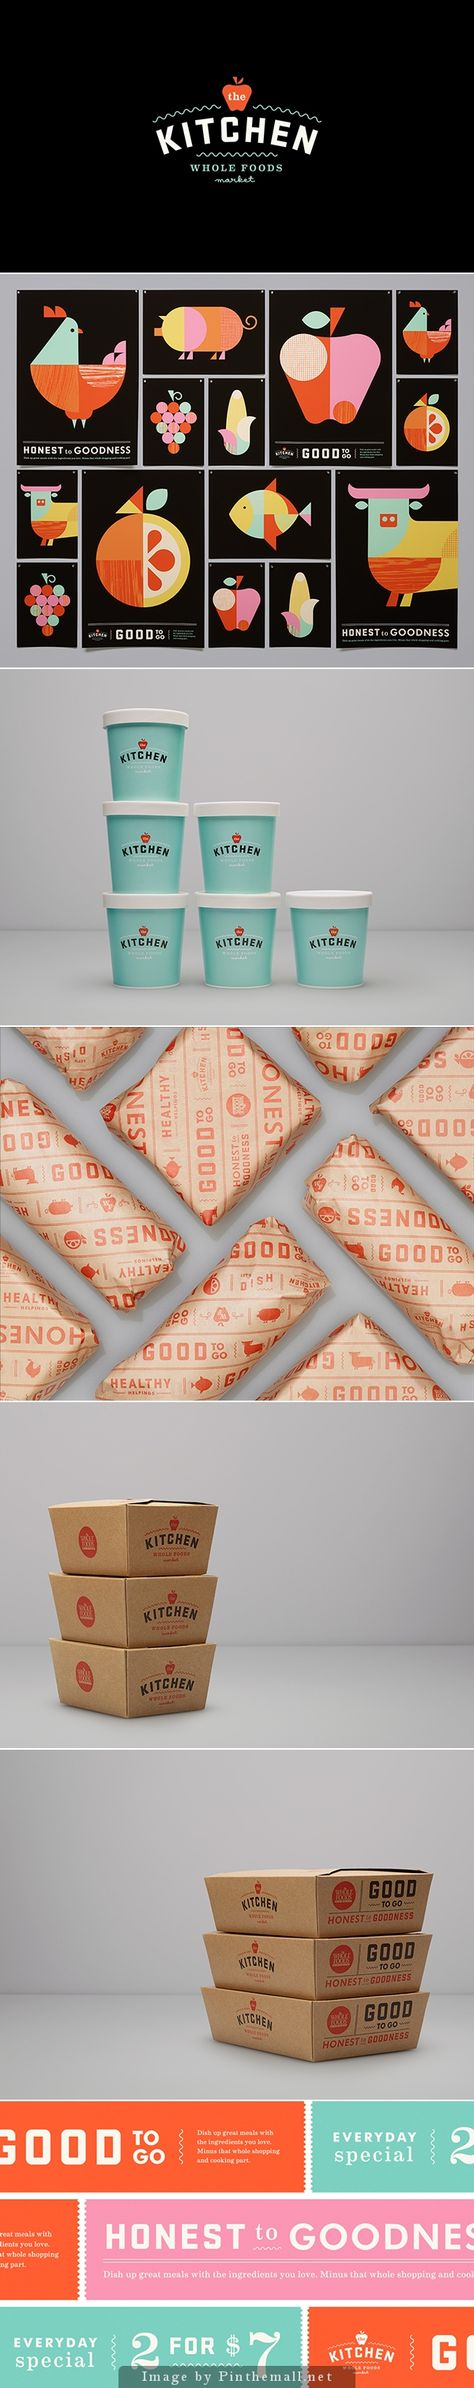 Identity / The Kitchen - Whole Foods by Moniker SF